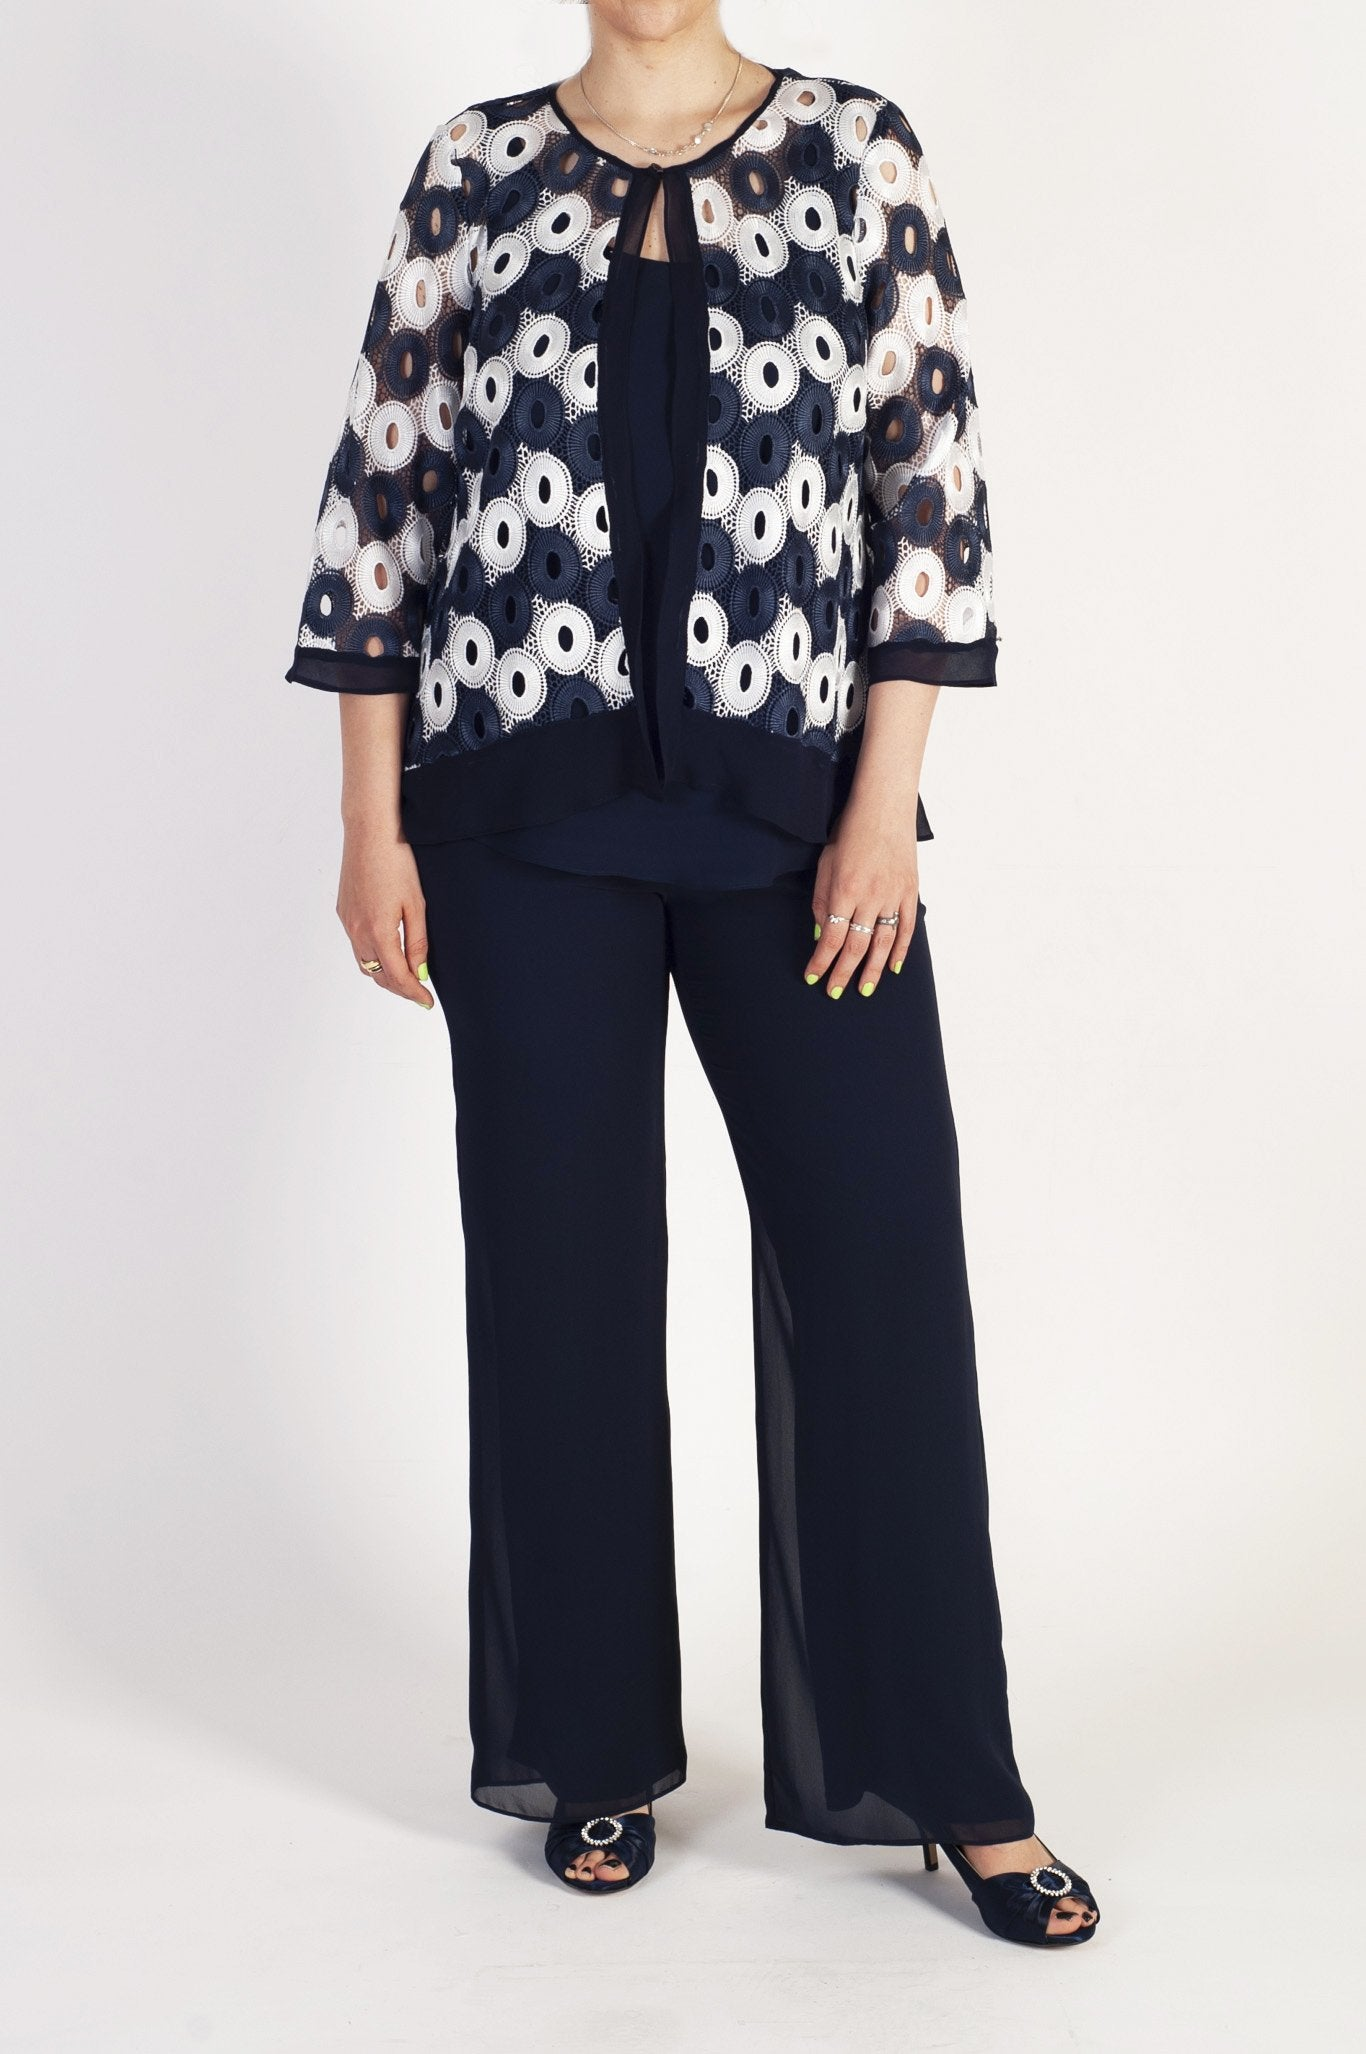 Ivory/Navy Gupiere Lace Contrast Circles Jacket with Contrast Trim